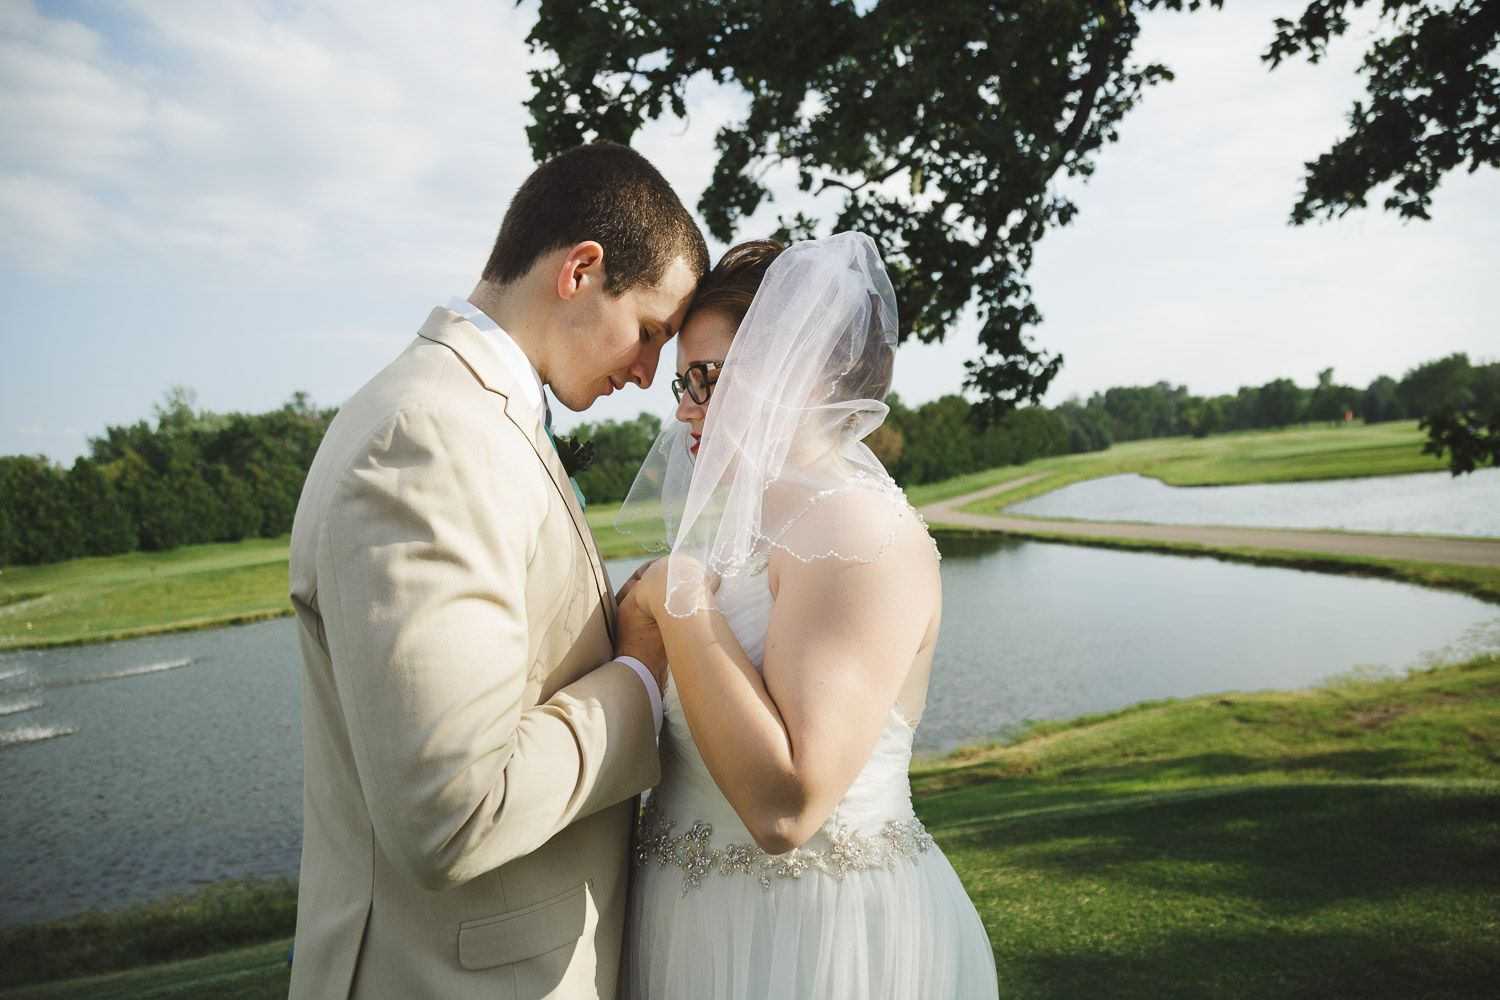 Cannon River Winery Wedding Photography Professional Wedding Photographer Wedding Photographers Wedding Photography